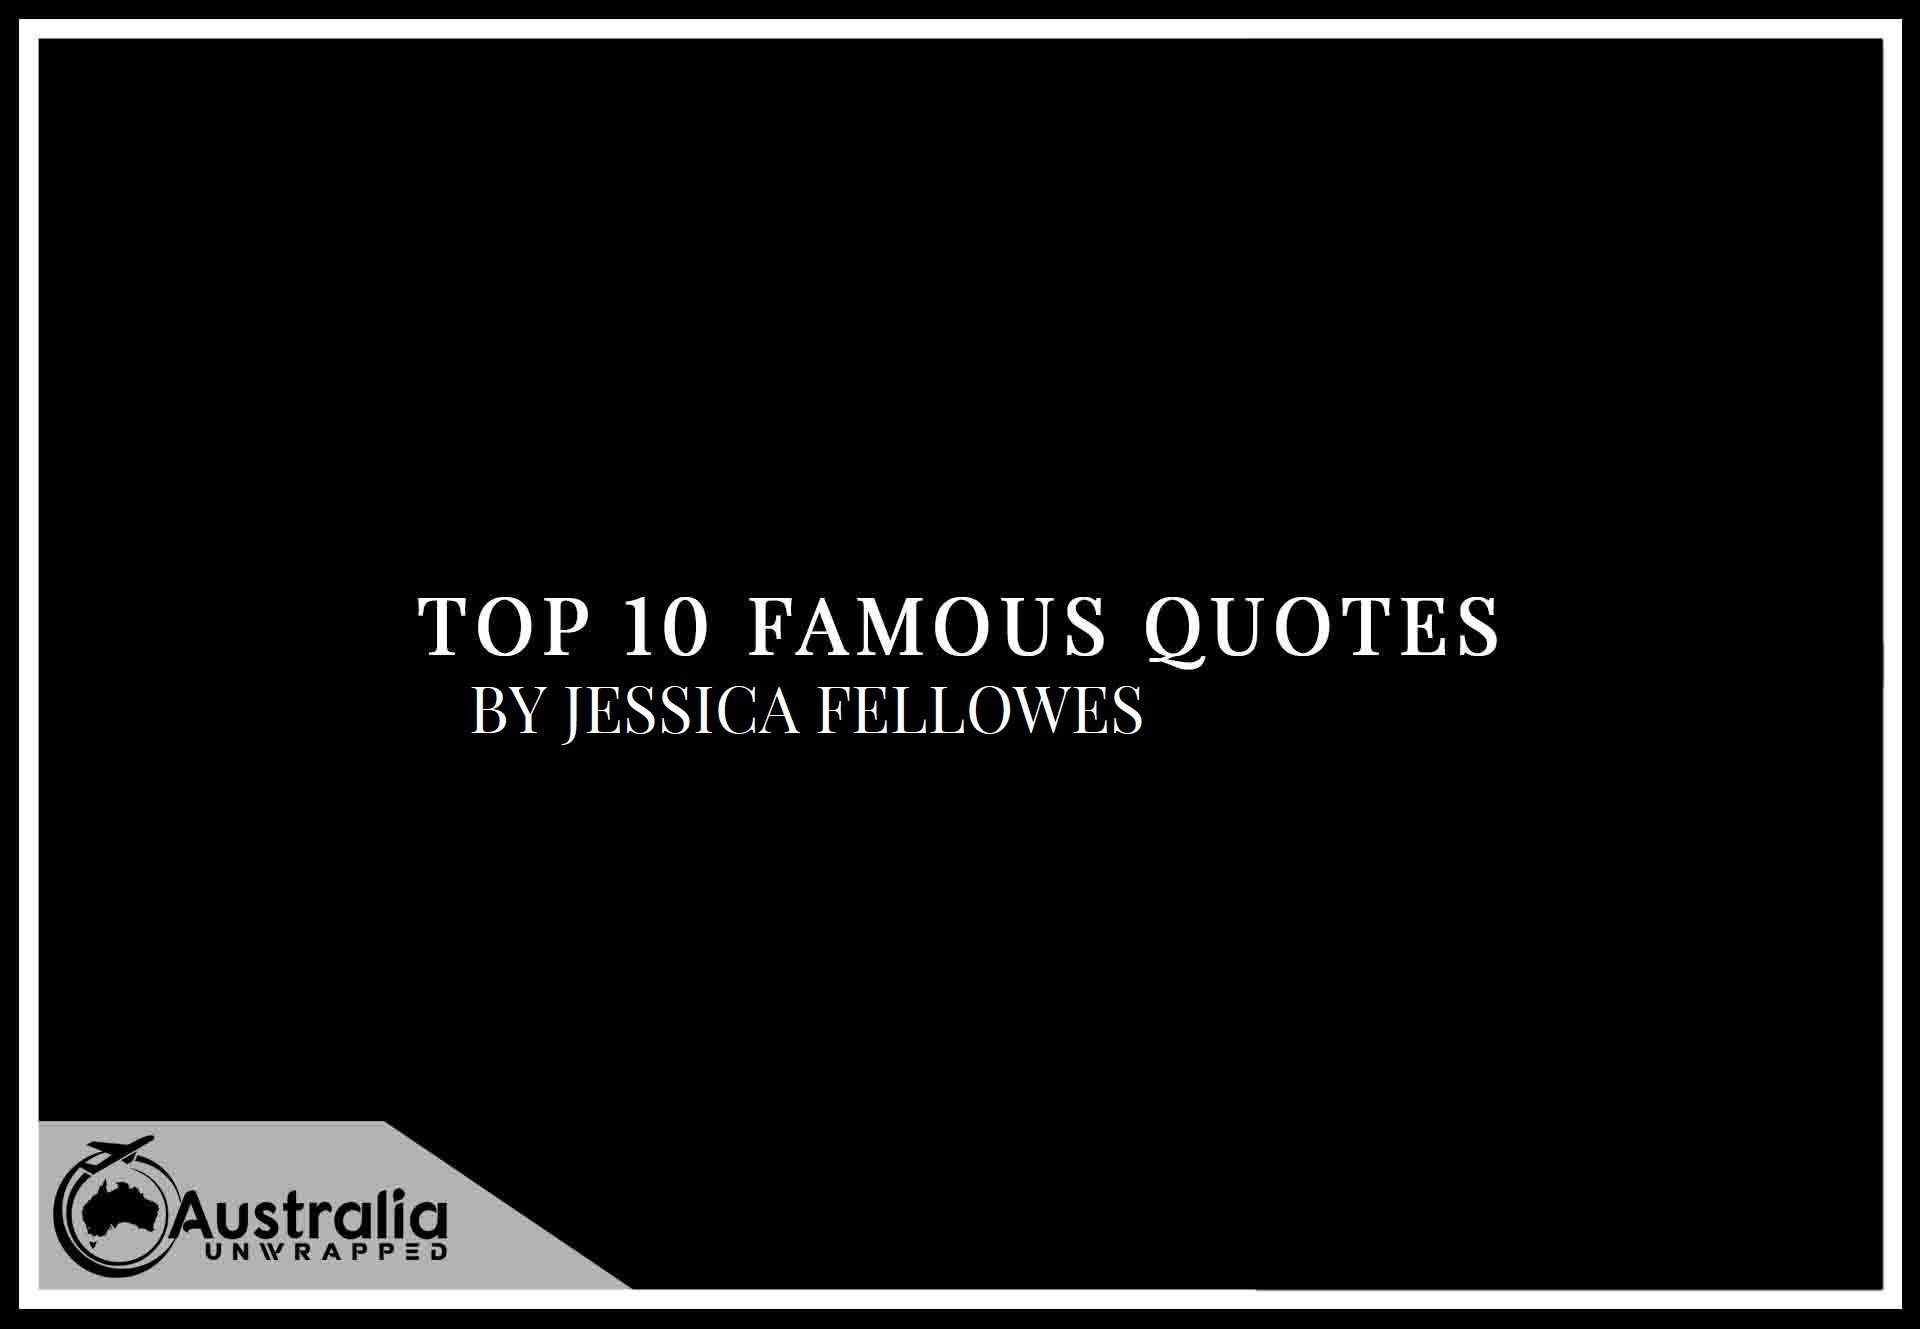 Top 10 Famous Quotes by Author Jessica Fellowes